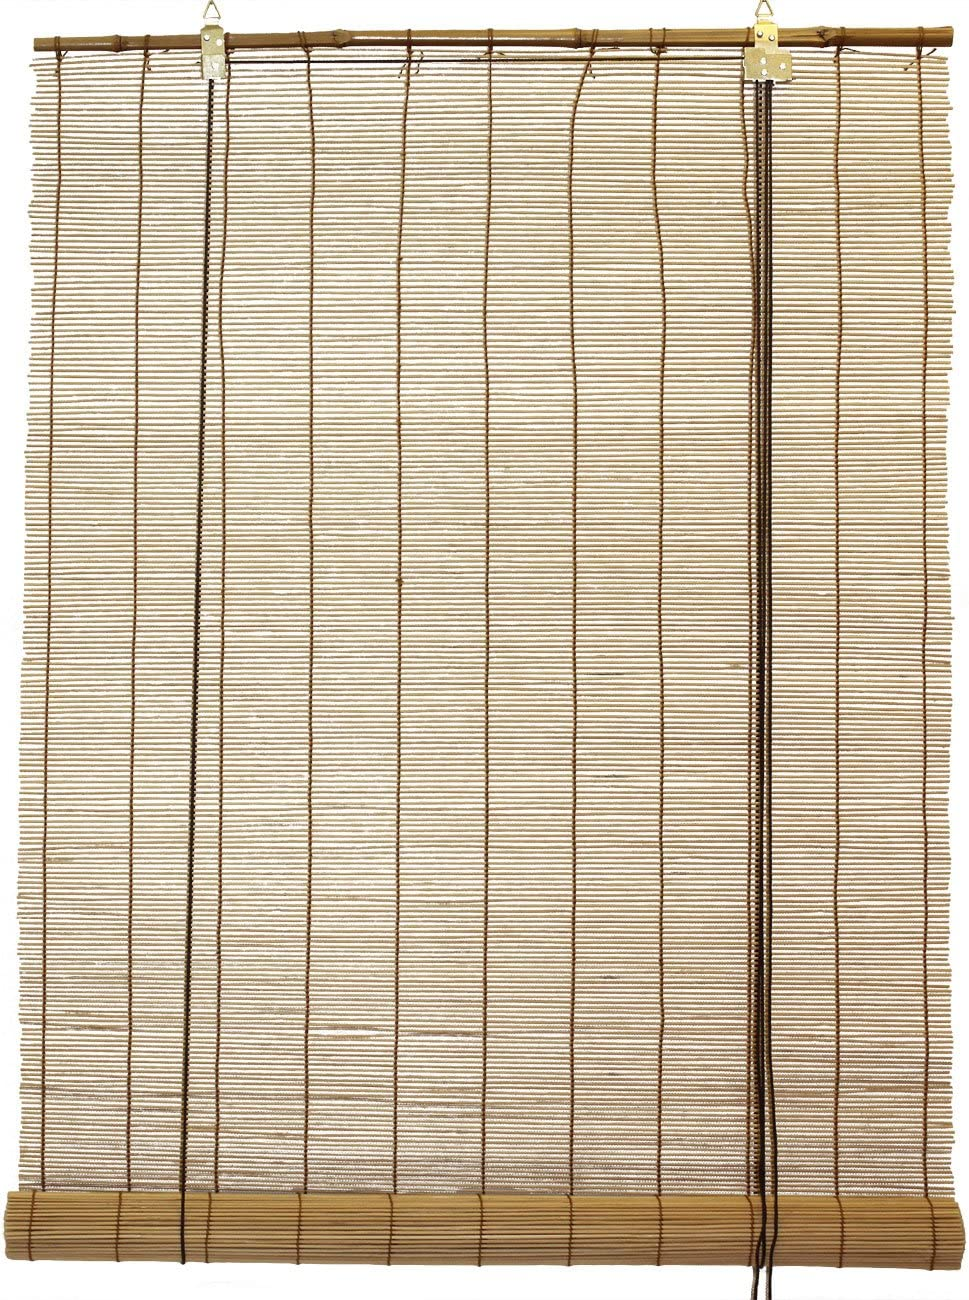 Seta Direct, Natural Bamboo Matchstick Roll Up Window Blind 84-Inch Wide by 66-Inch Length Light Brown